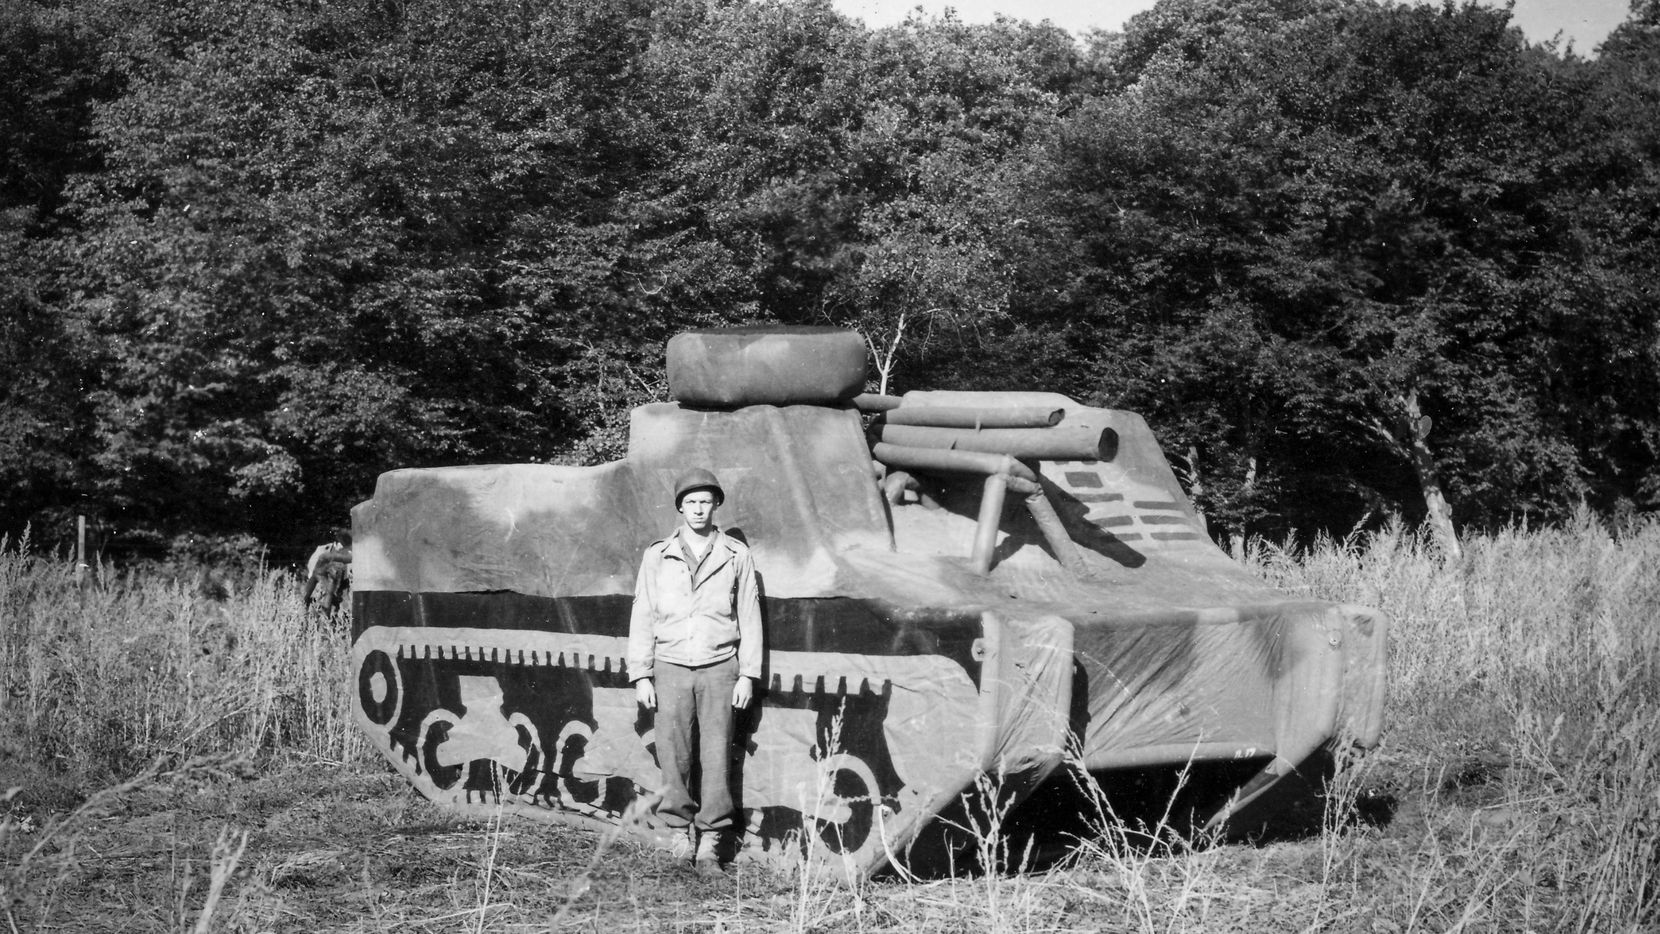 A soldier stands in front of an inflatable tank that he used as a member of the Ghost Army in World War II to trick Germans into thinking the Allies were closing in.